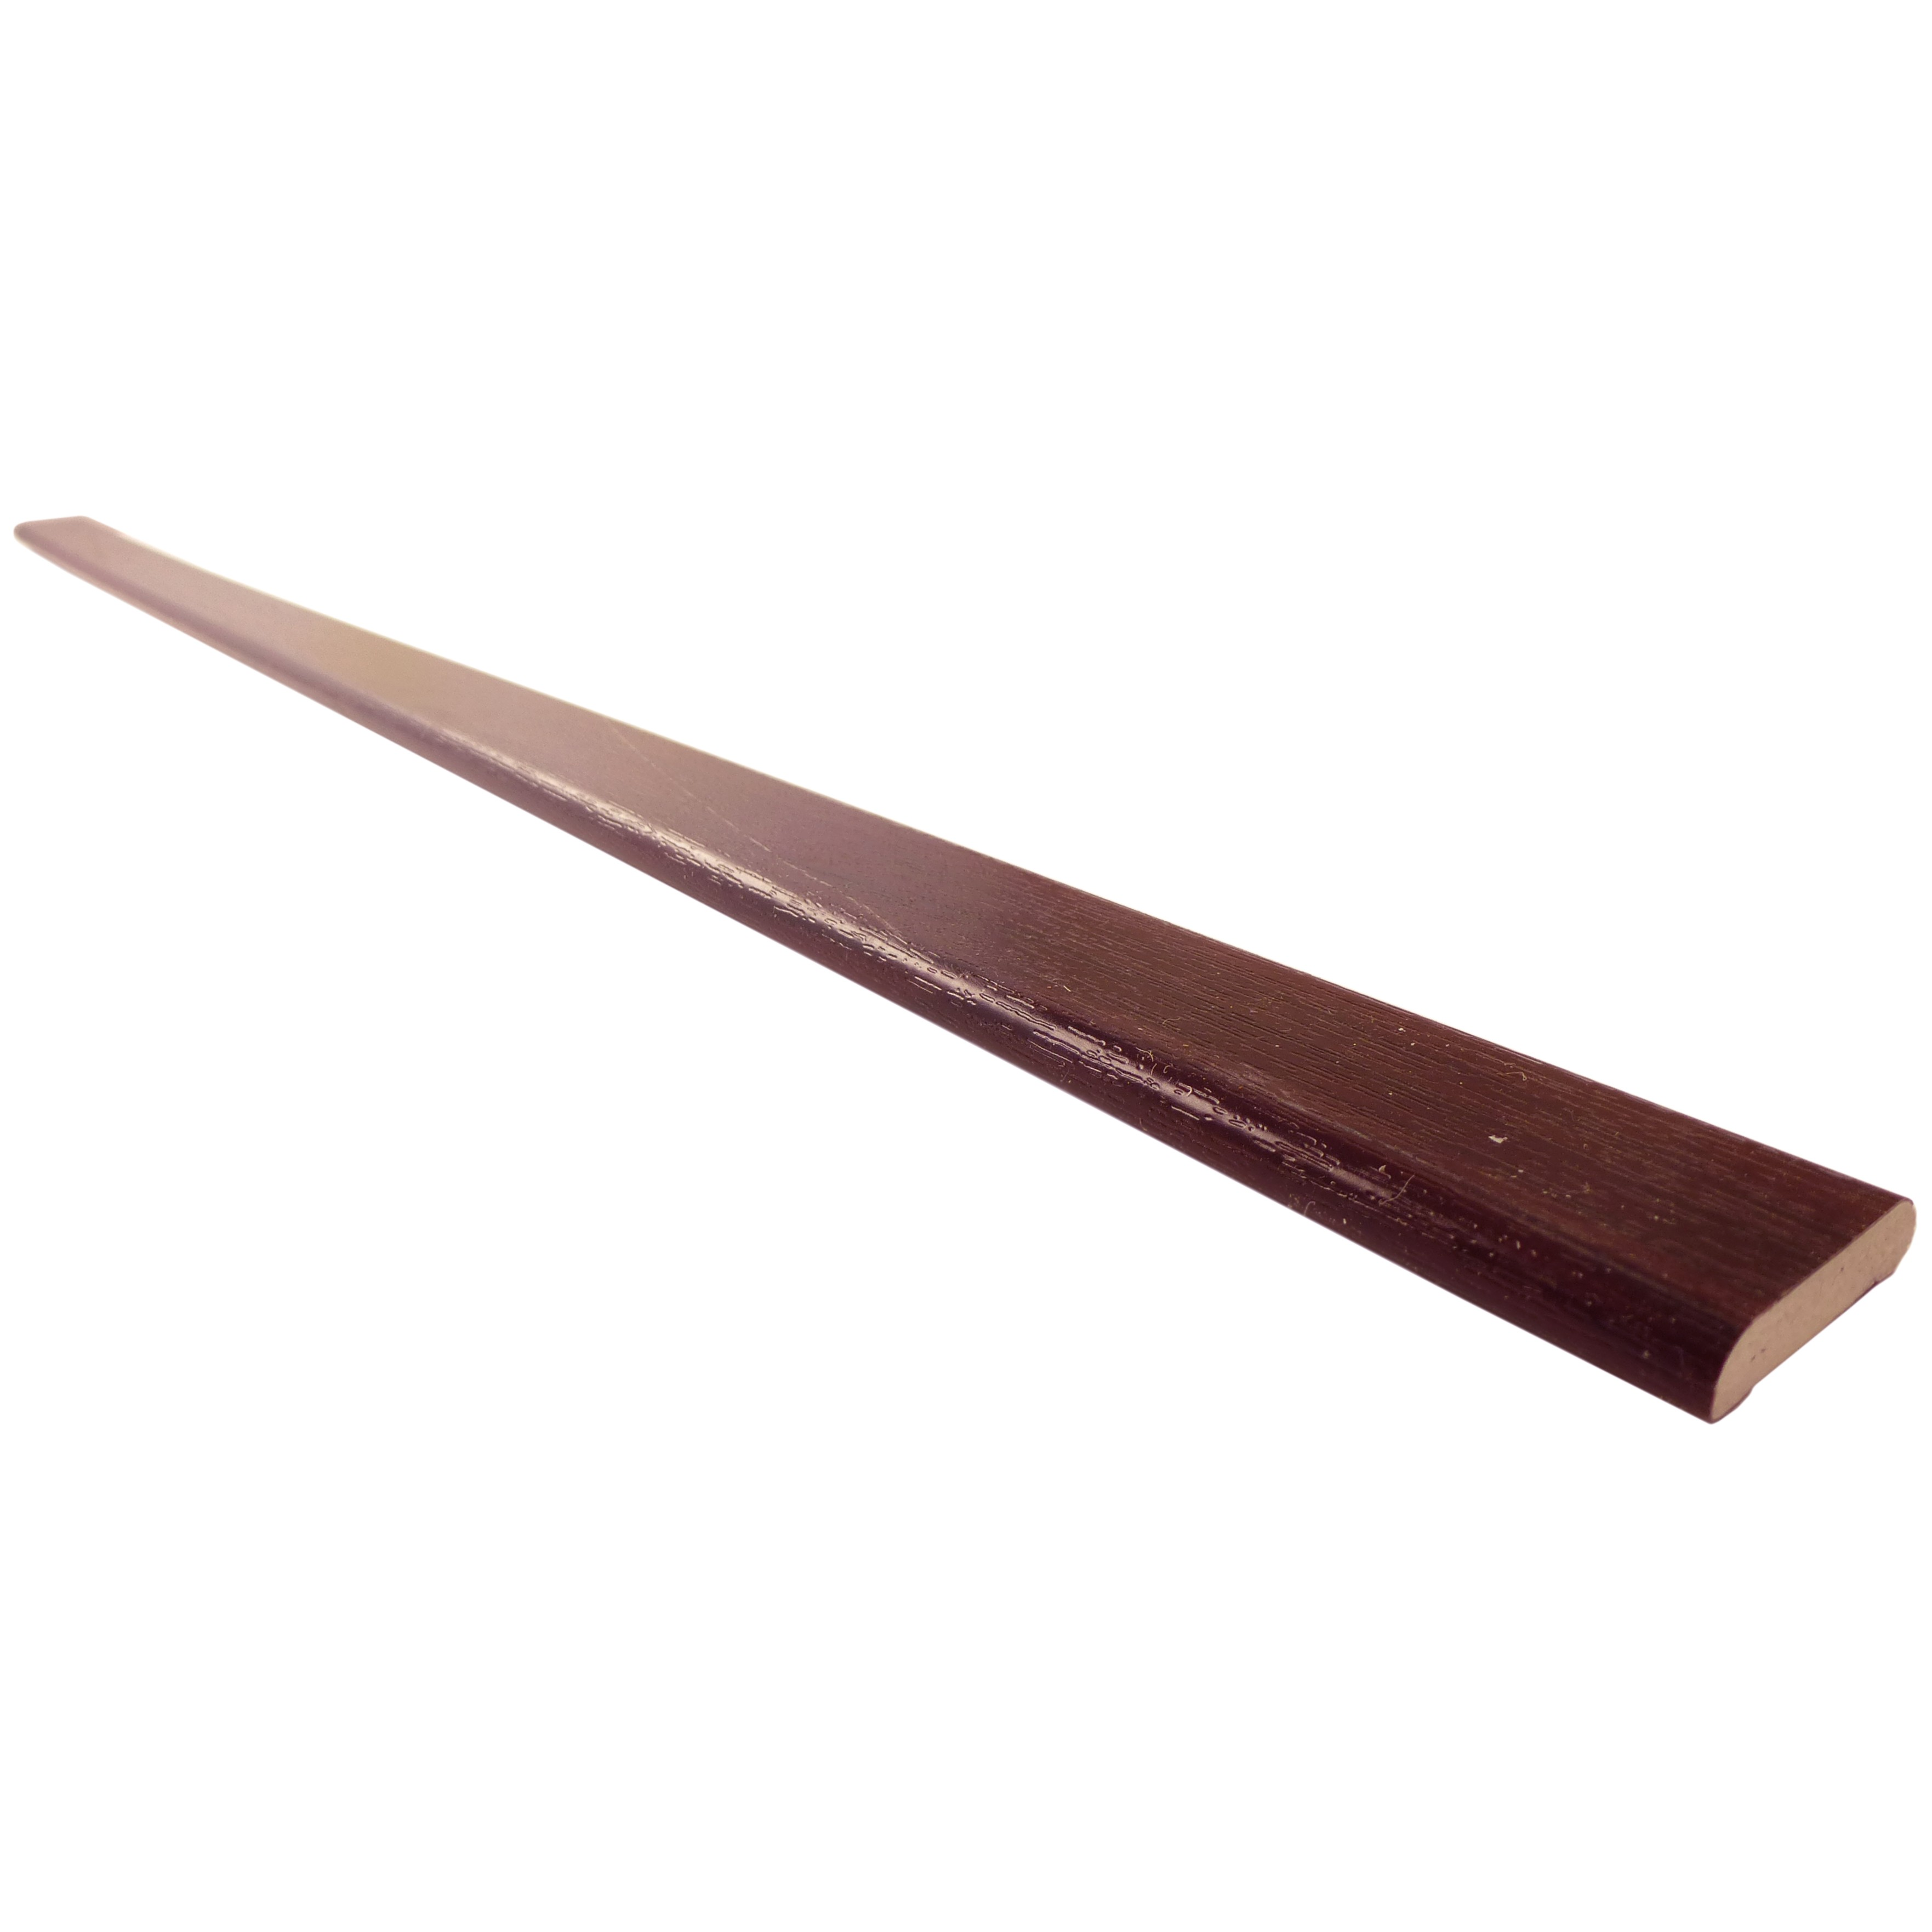 Freefoam Plastic D Shape Window Trim - Woodgrain Rosewood, 28mm, 5 metre